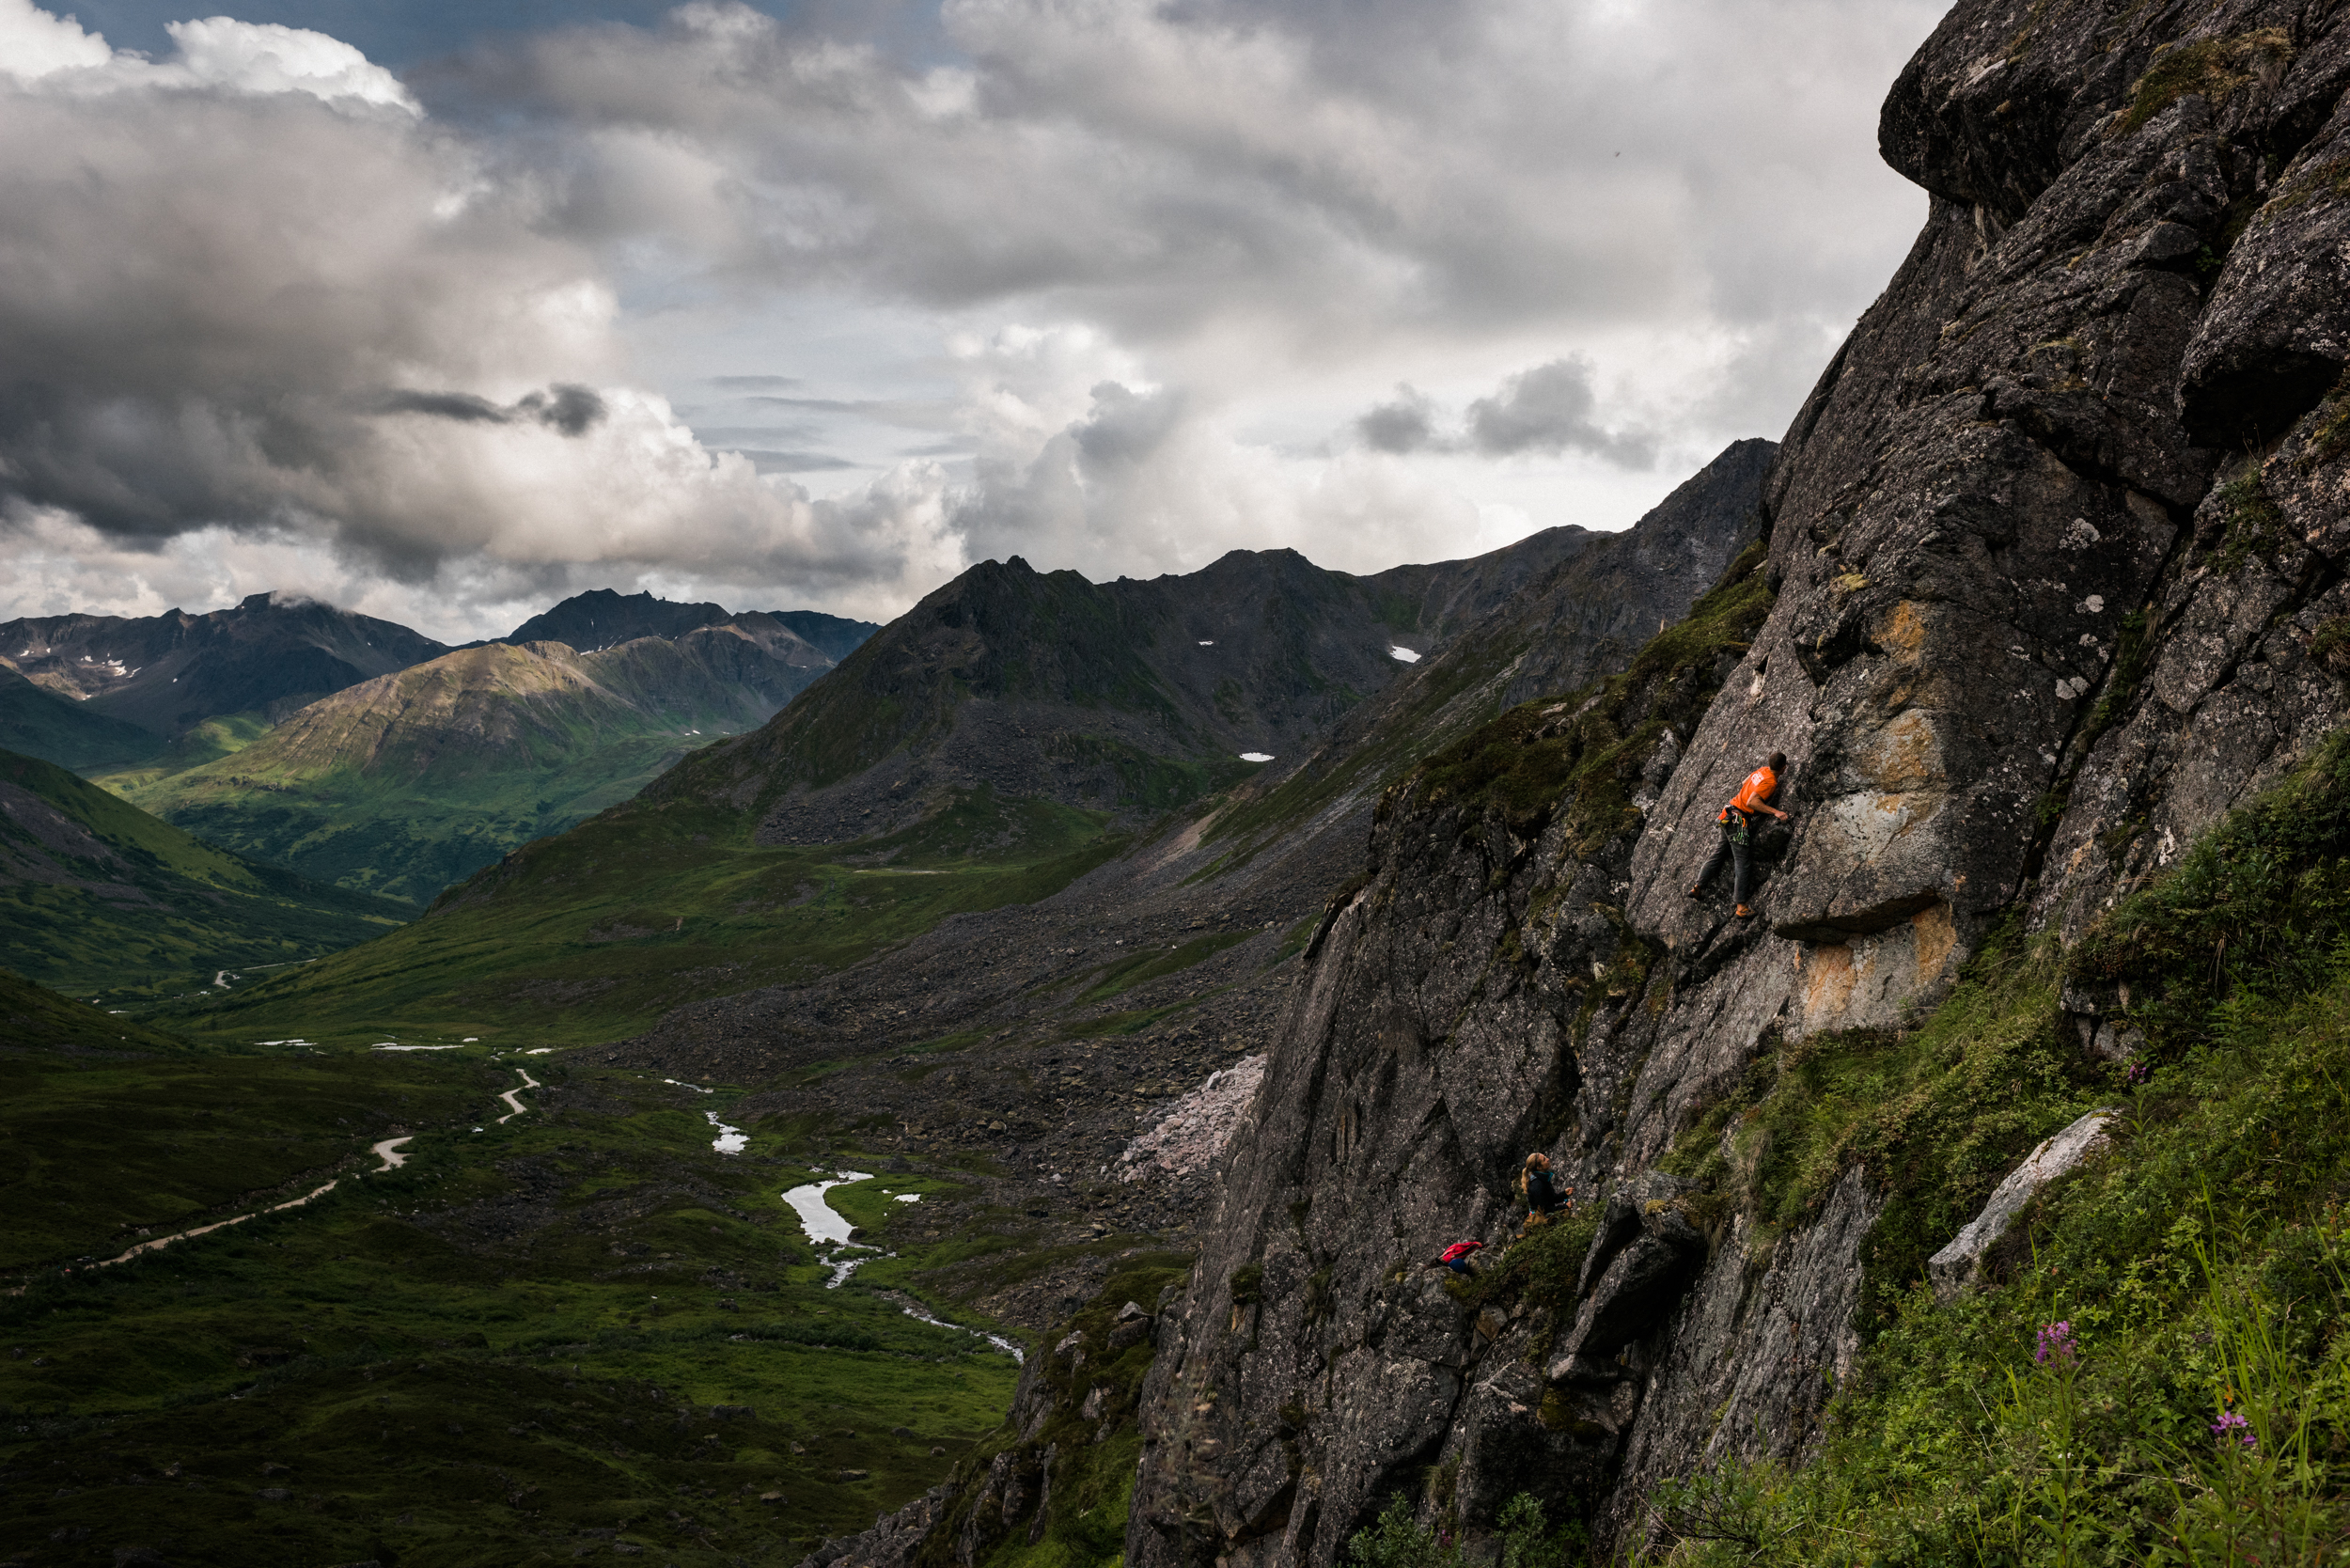 TaraShupe_Photography_Alaska_RockClimbing_HatchersPass_Travel_Photographer_Women_Adventure_045.jpg